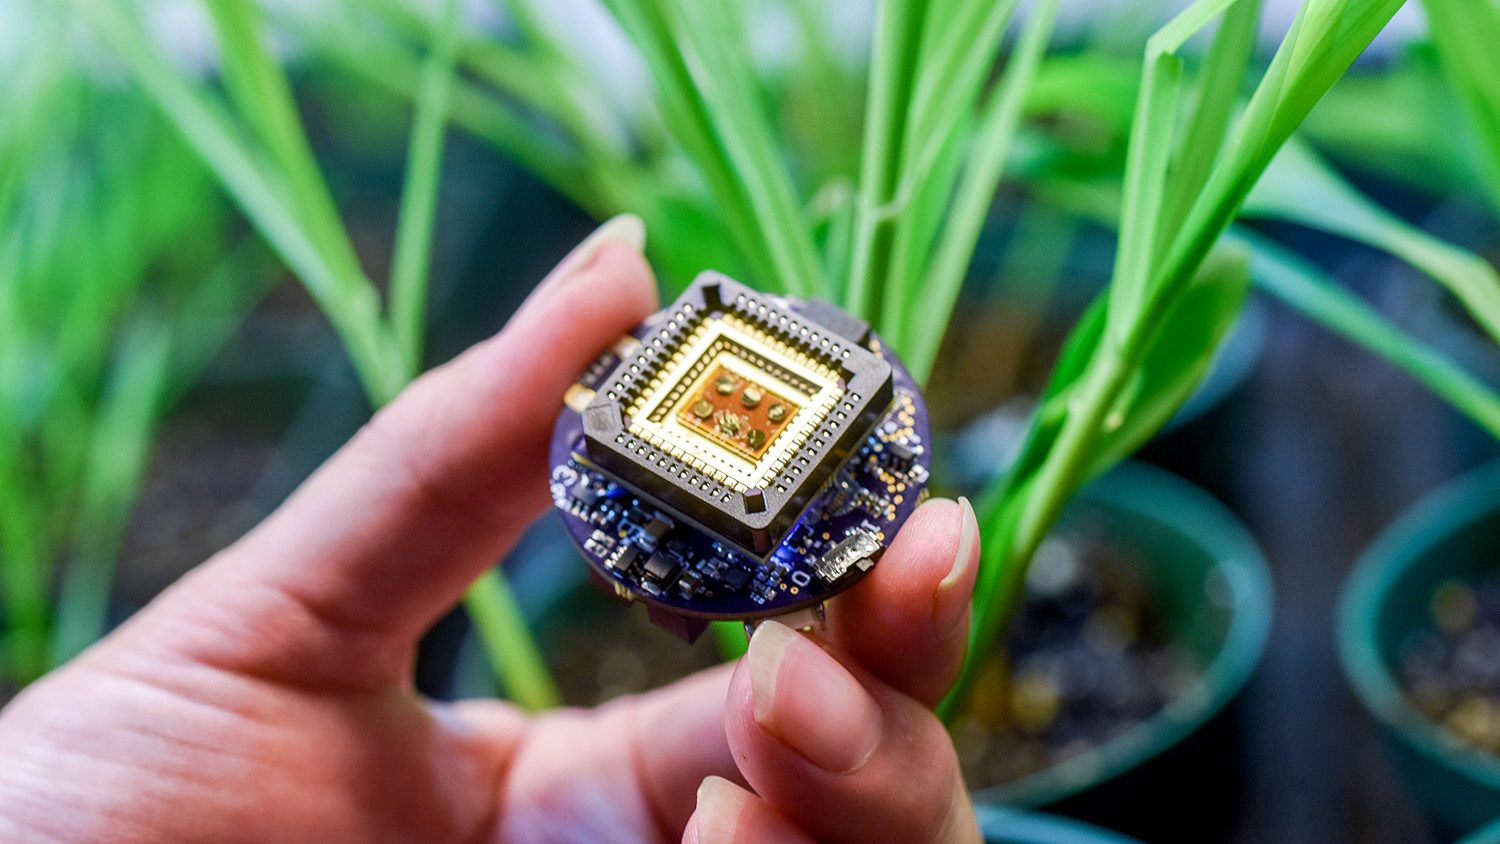 Hand holding quarter-sized sensor near corn plants